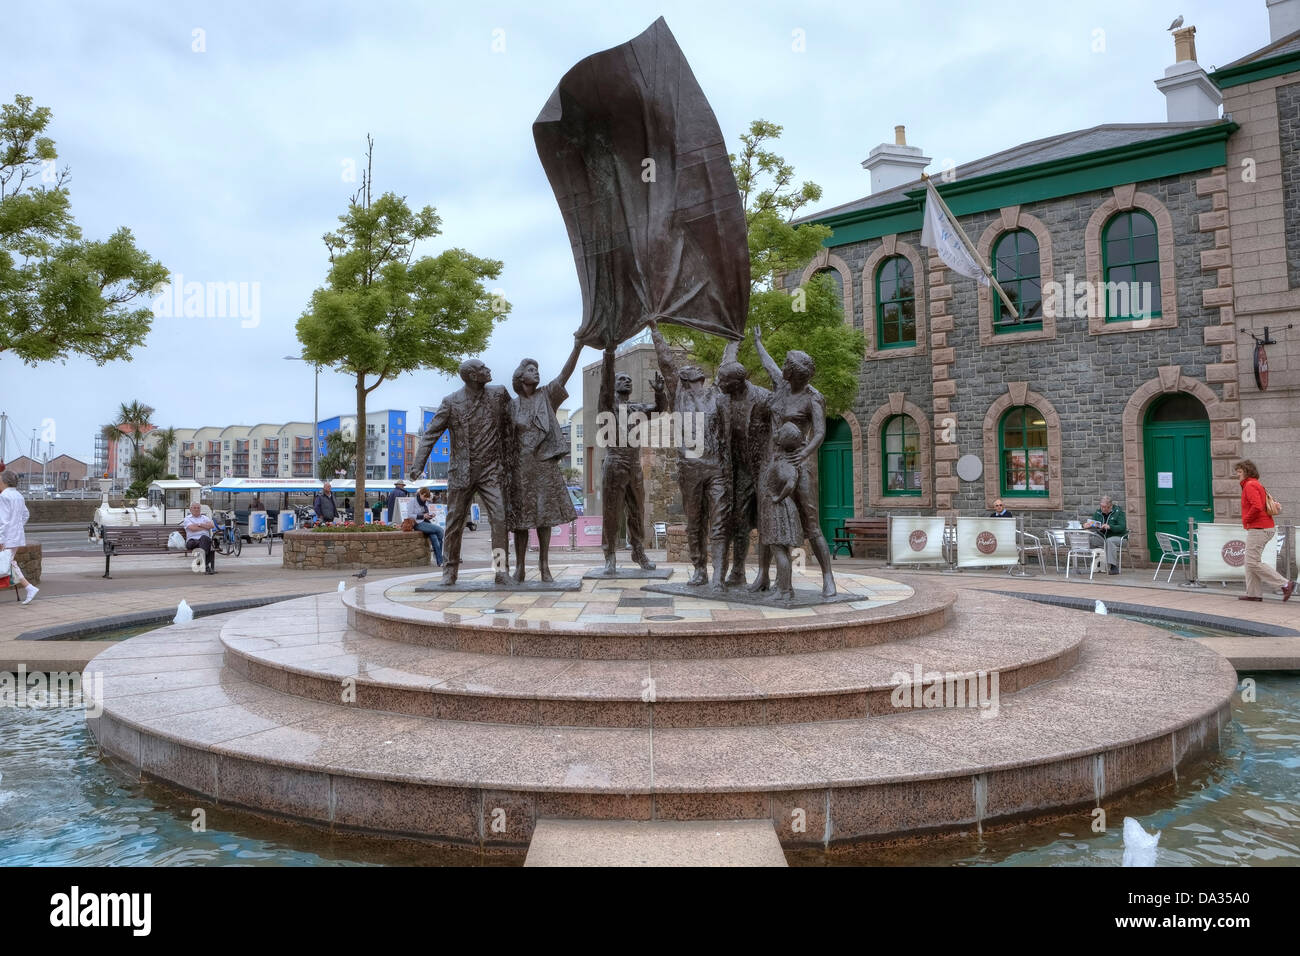 Liberation Square, St Helier, Jersey, United Kingdom - Stock Image